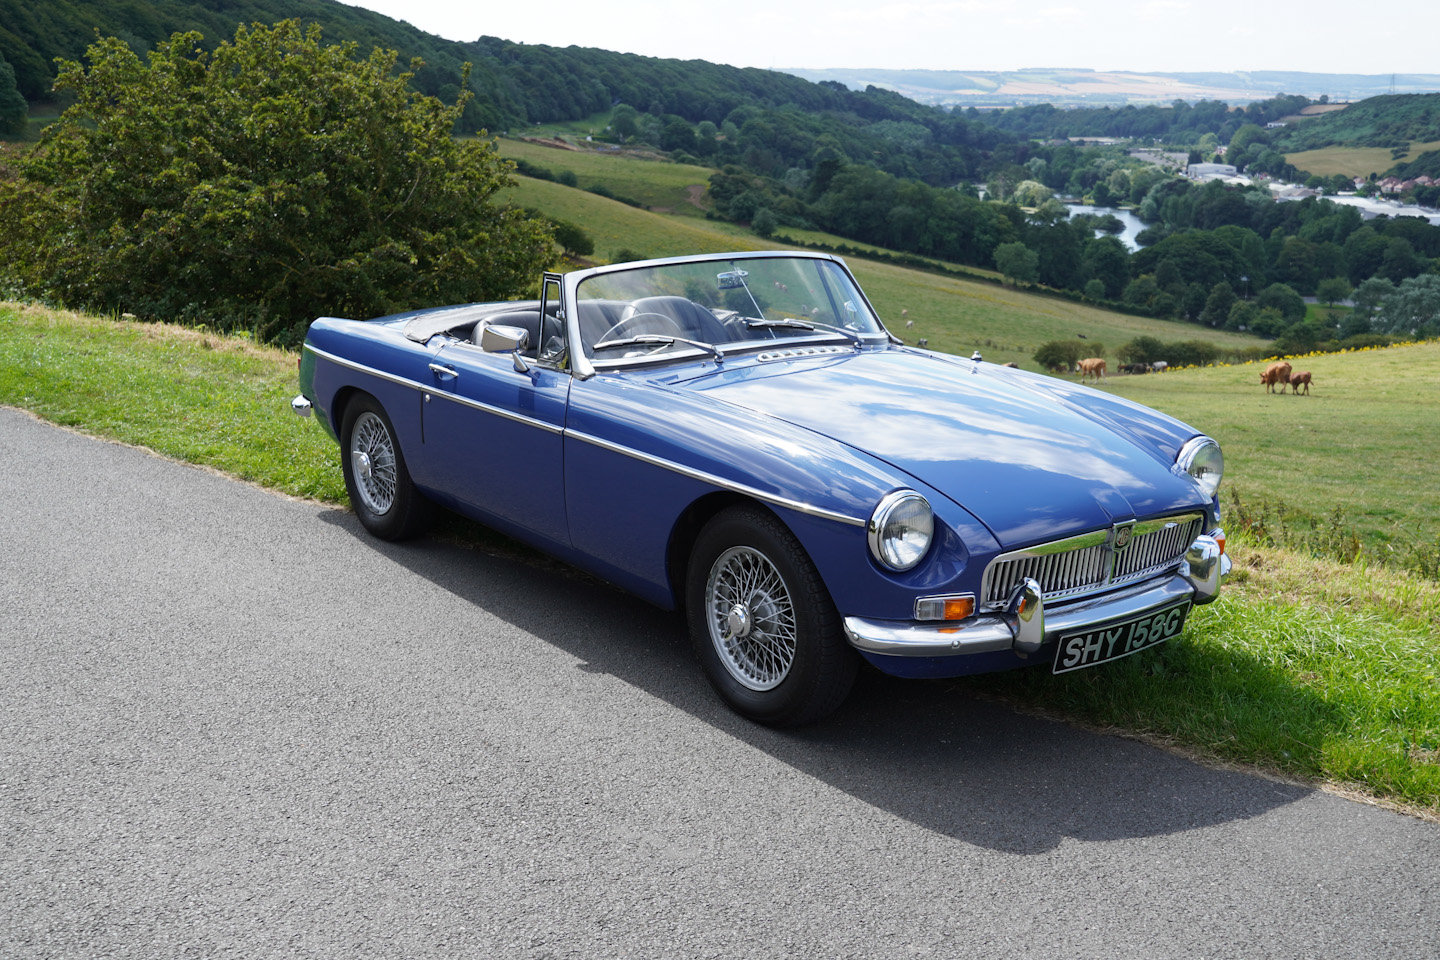 1968 MGB Roadster - Original UK Numbers Matching Car For Sale (picture 1 of 10)